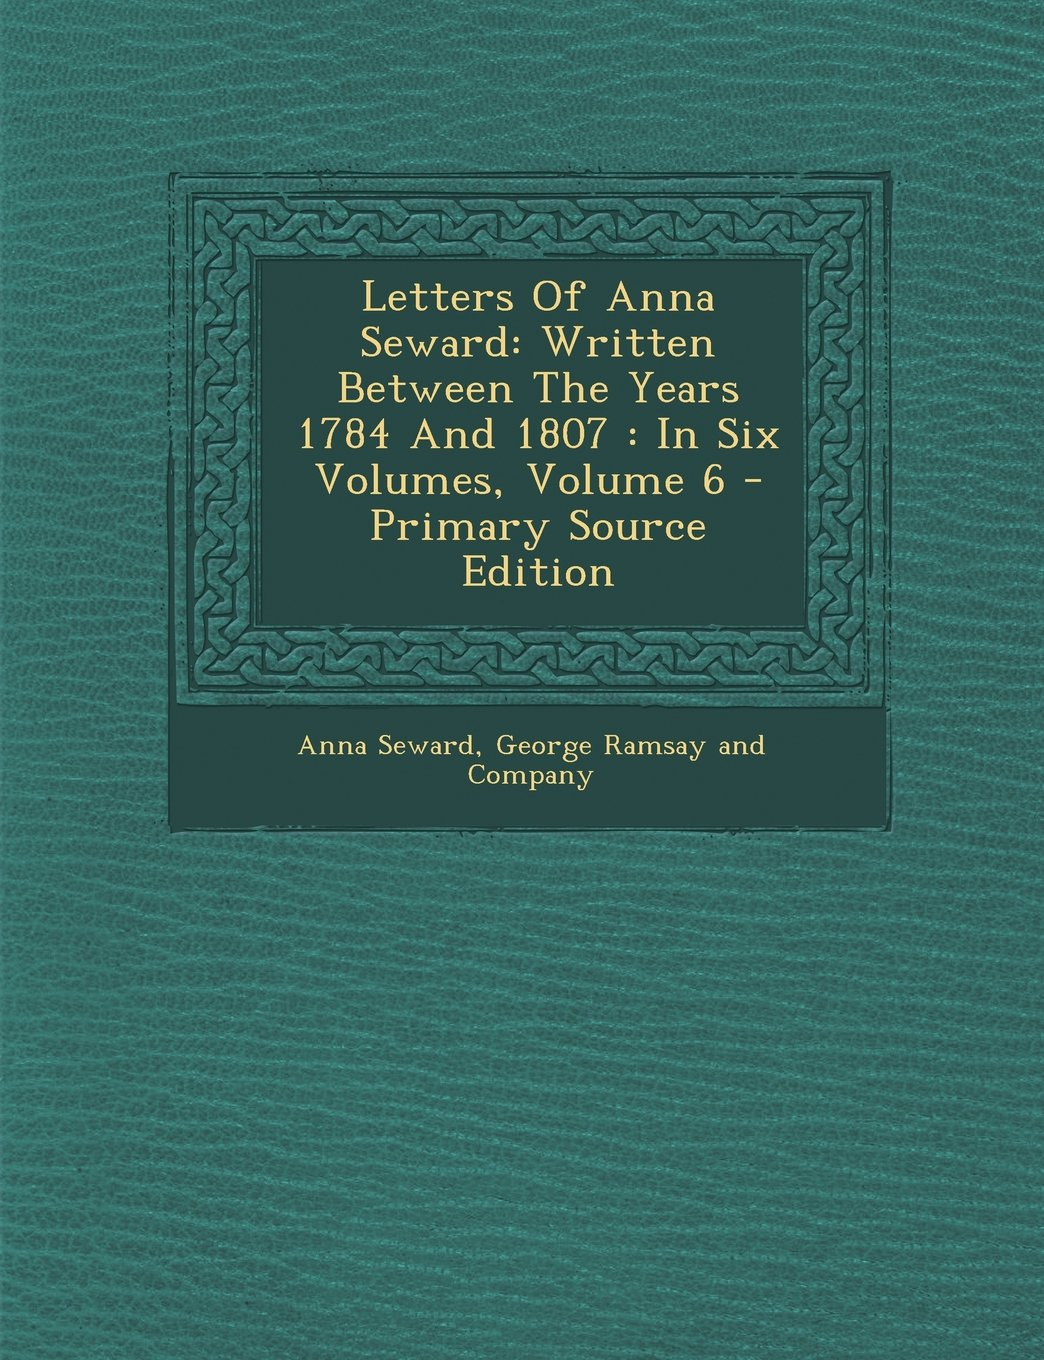 Letters of Anna Seward: Written Between the Years 1784 and 1807: In Six Volumes, Volume 6 - Primary Source Edition ebook